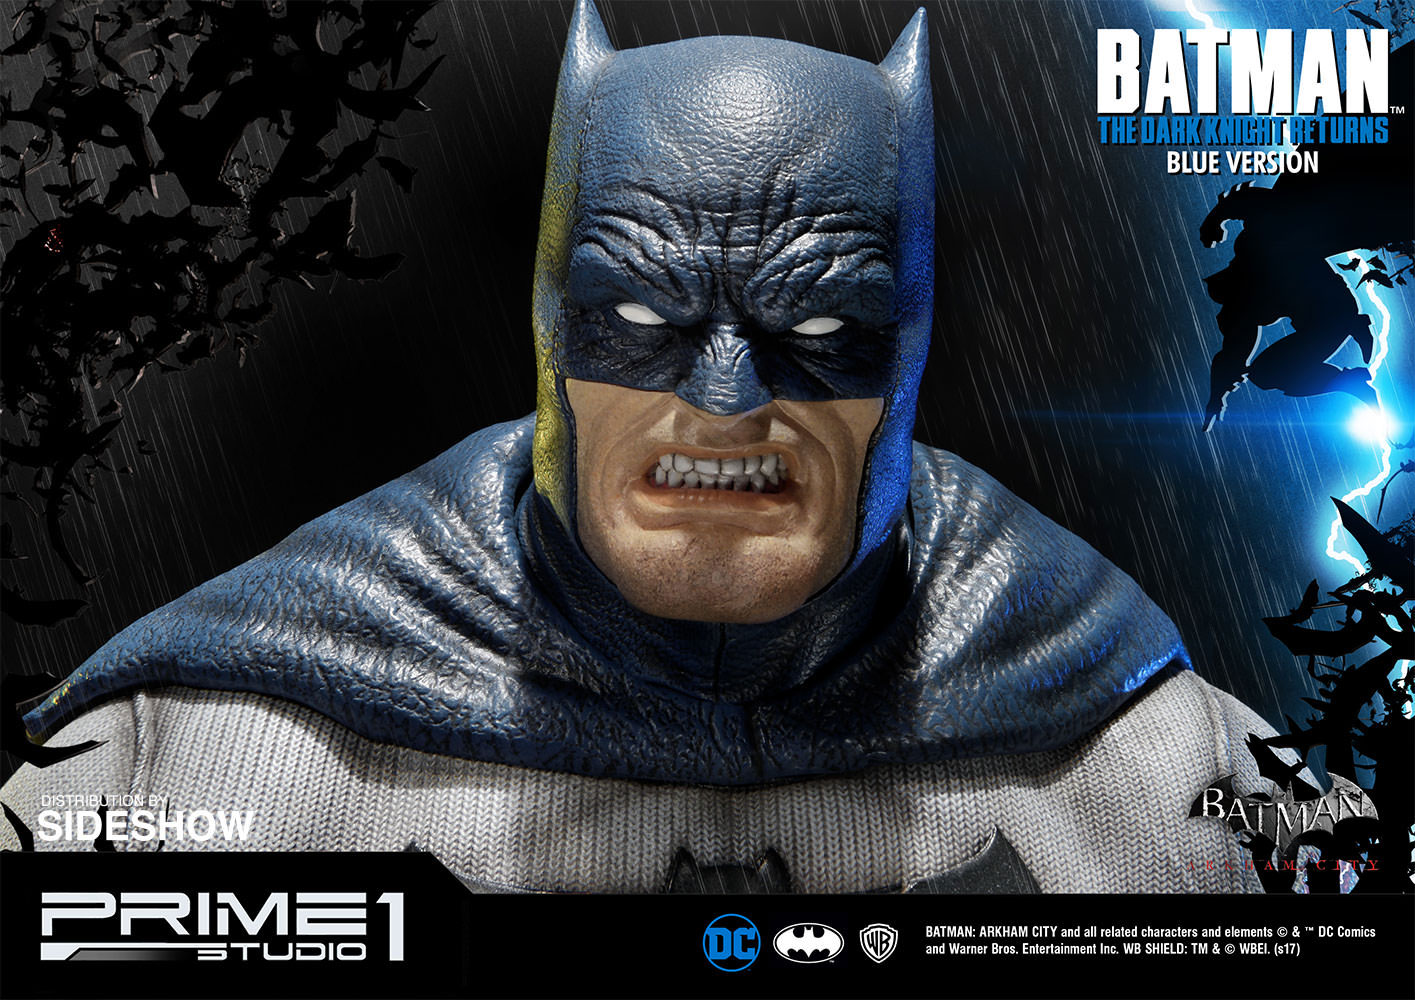 prime-1-studio-The-Dark-Knight-Returns-Batman-Blue-Version-Bust-1